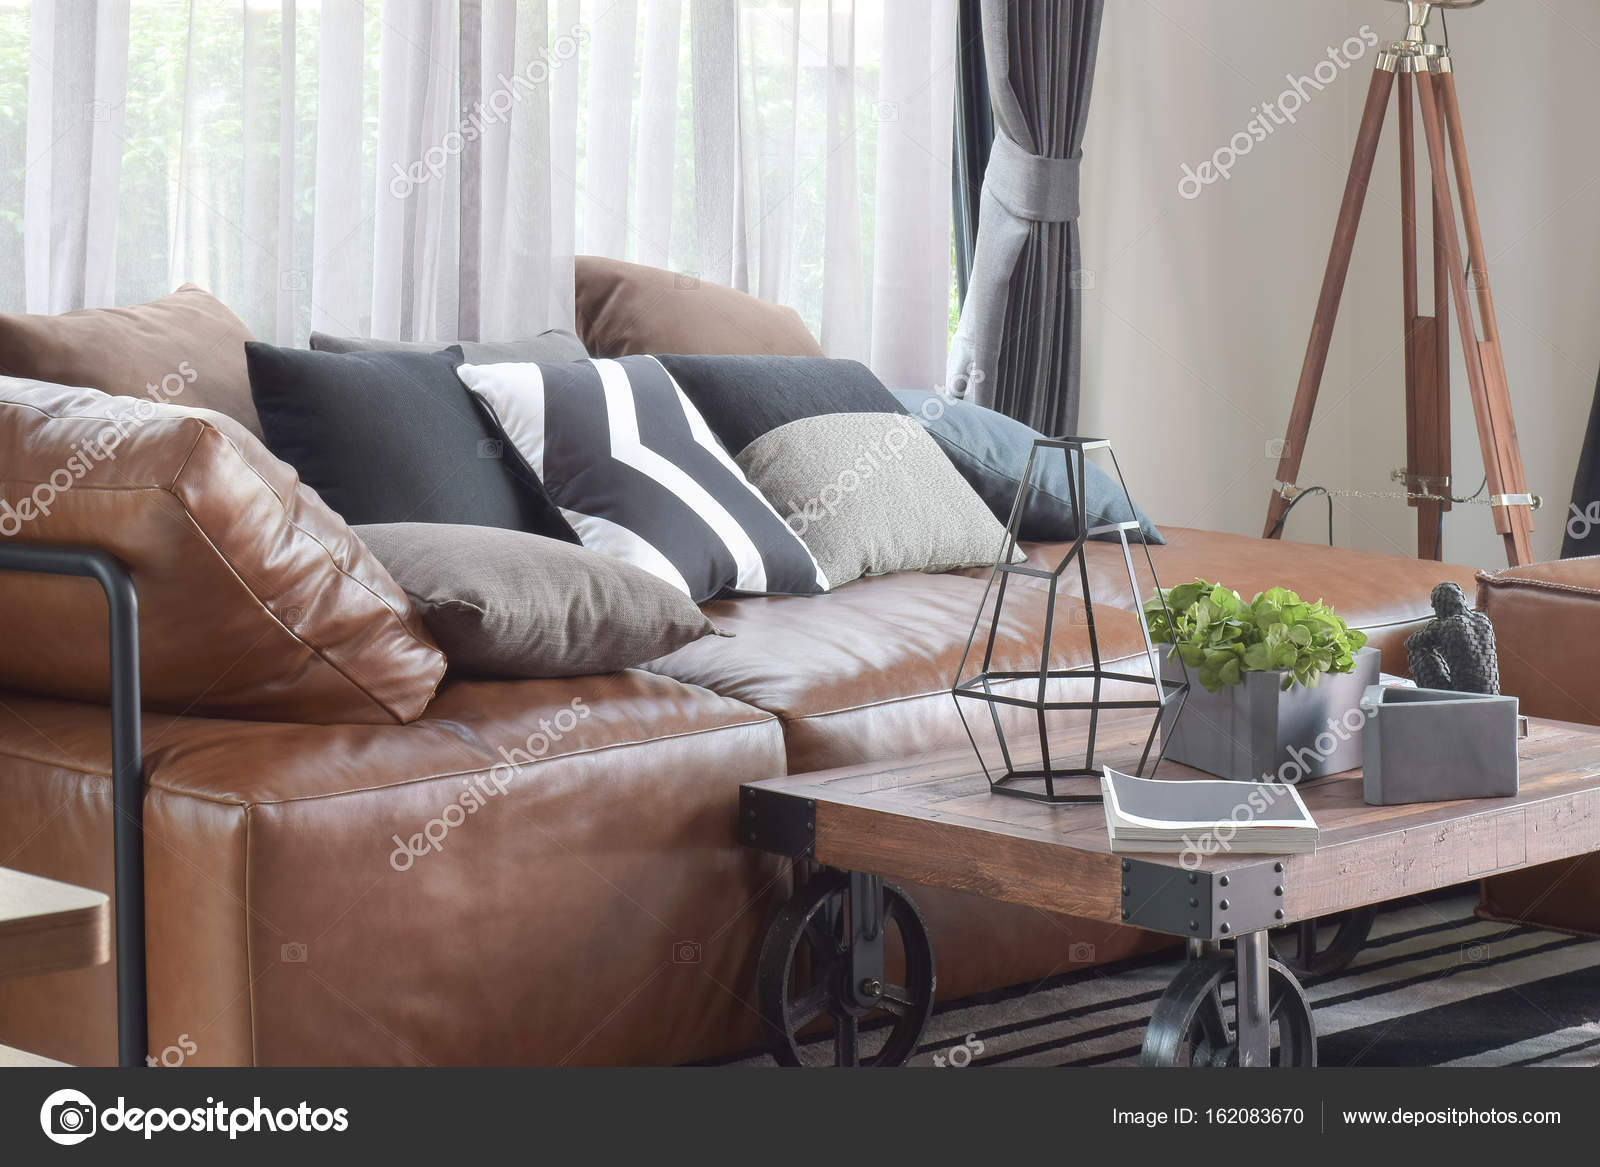 Wood Center Table With Wheel And Light Brown Leather Sofa In Industrial Style Decoration Stock